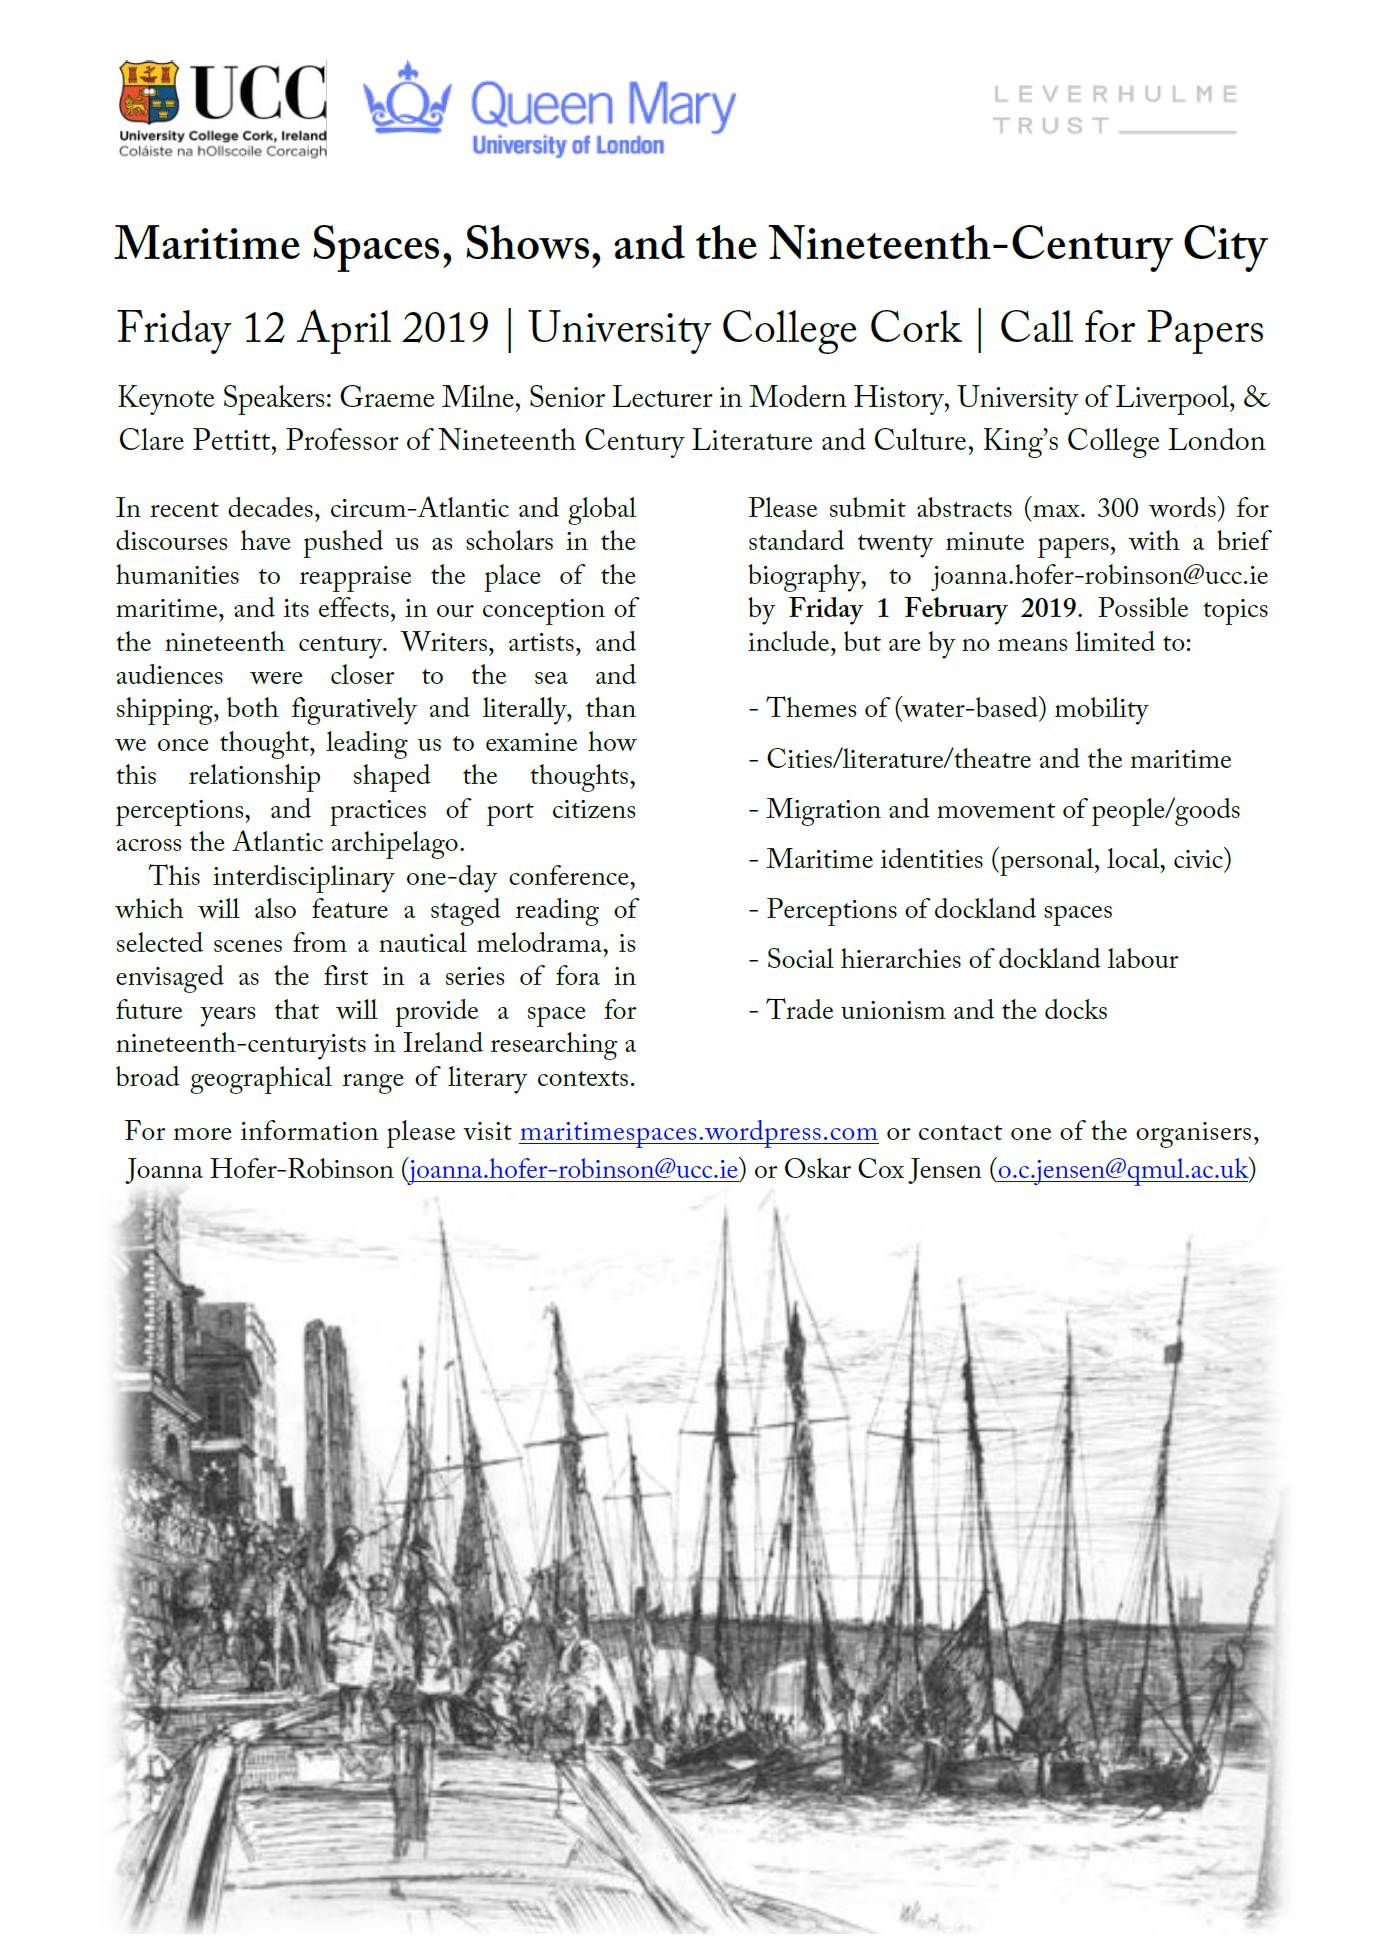 Call for Papers: Maritime Spaces, Shows, and the Nineteenth-Century City